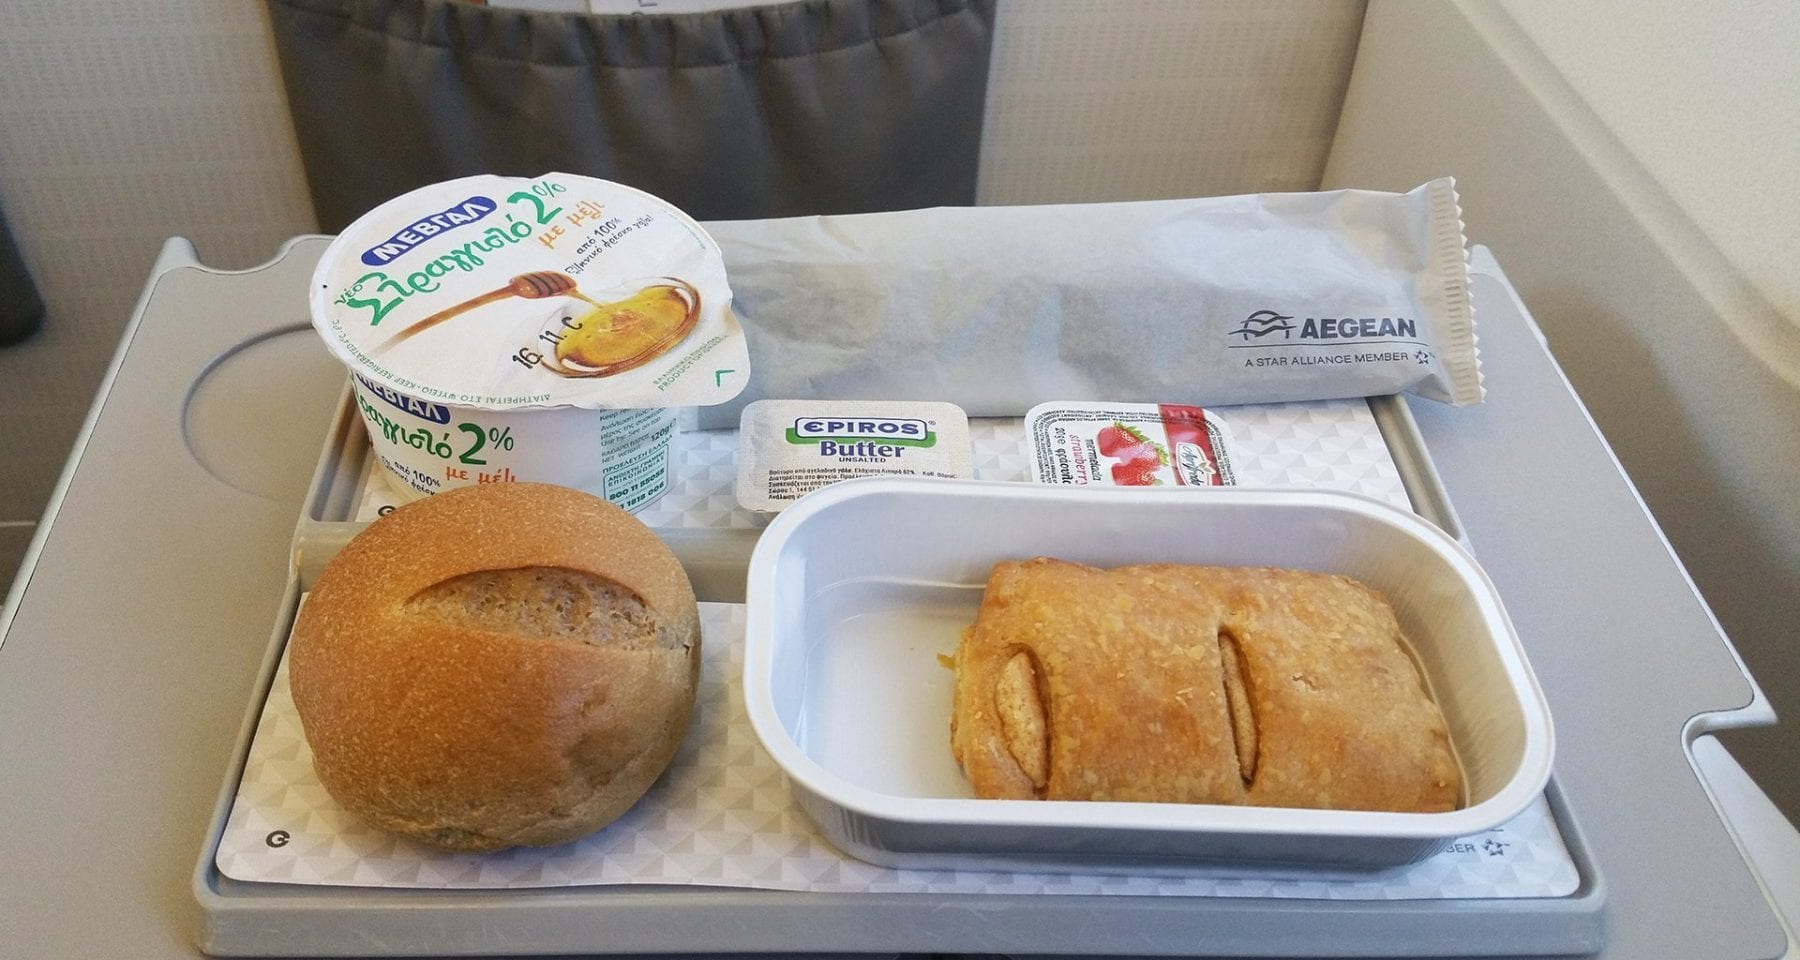 Aegean airlines economy class meal